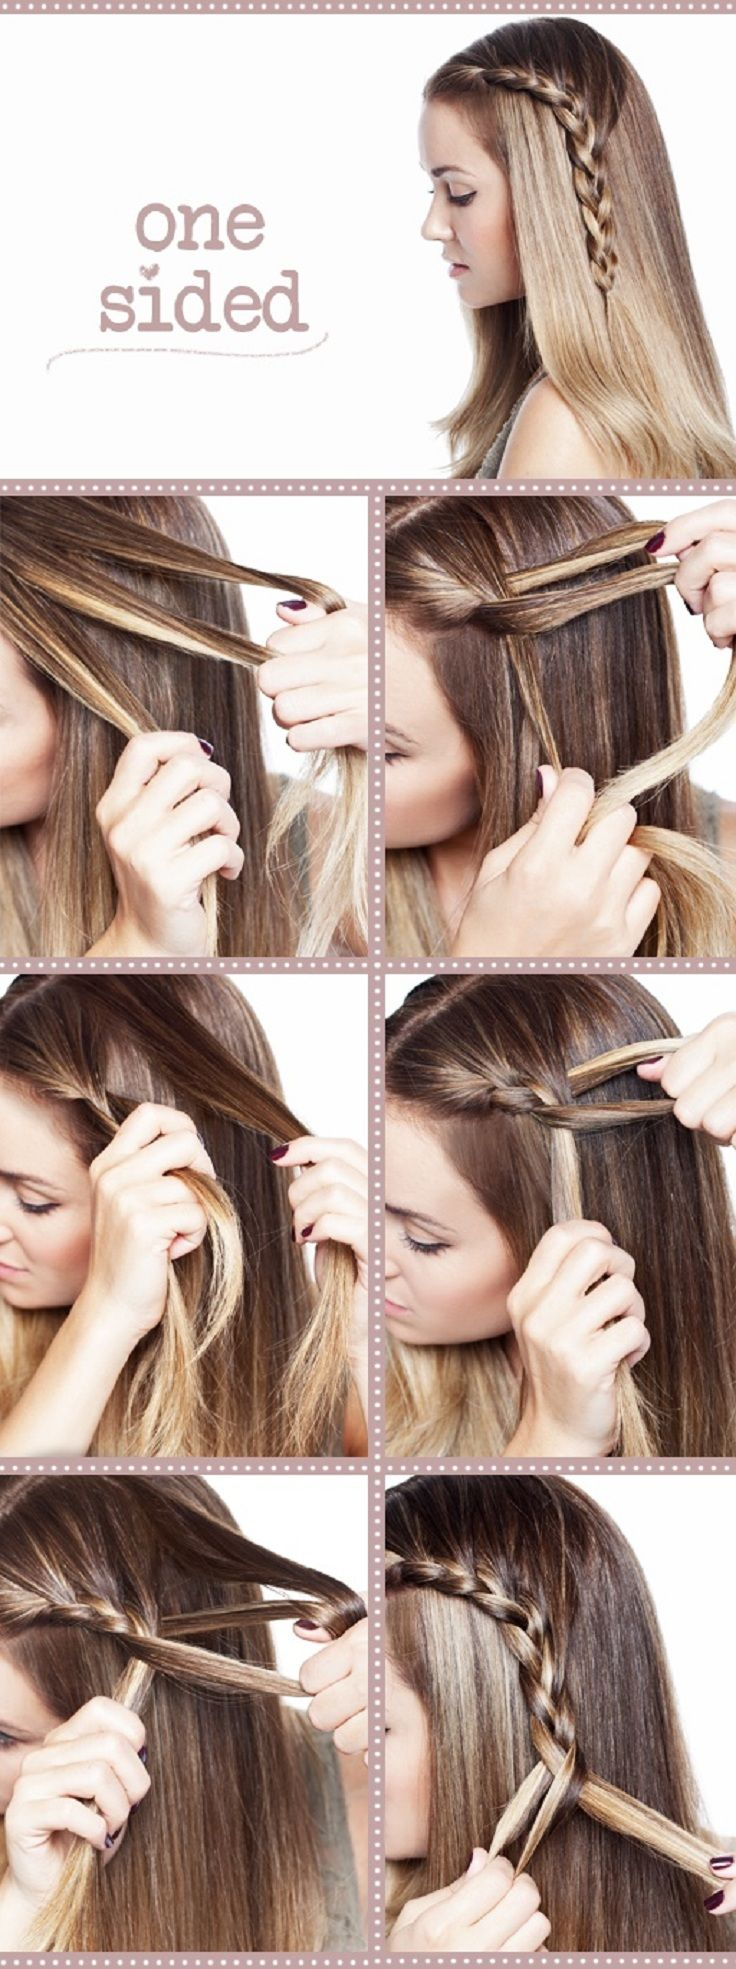 TOP 10 Braid tutorials